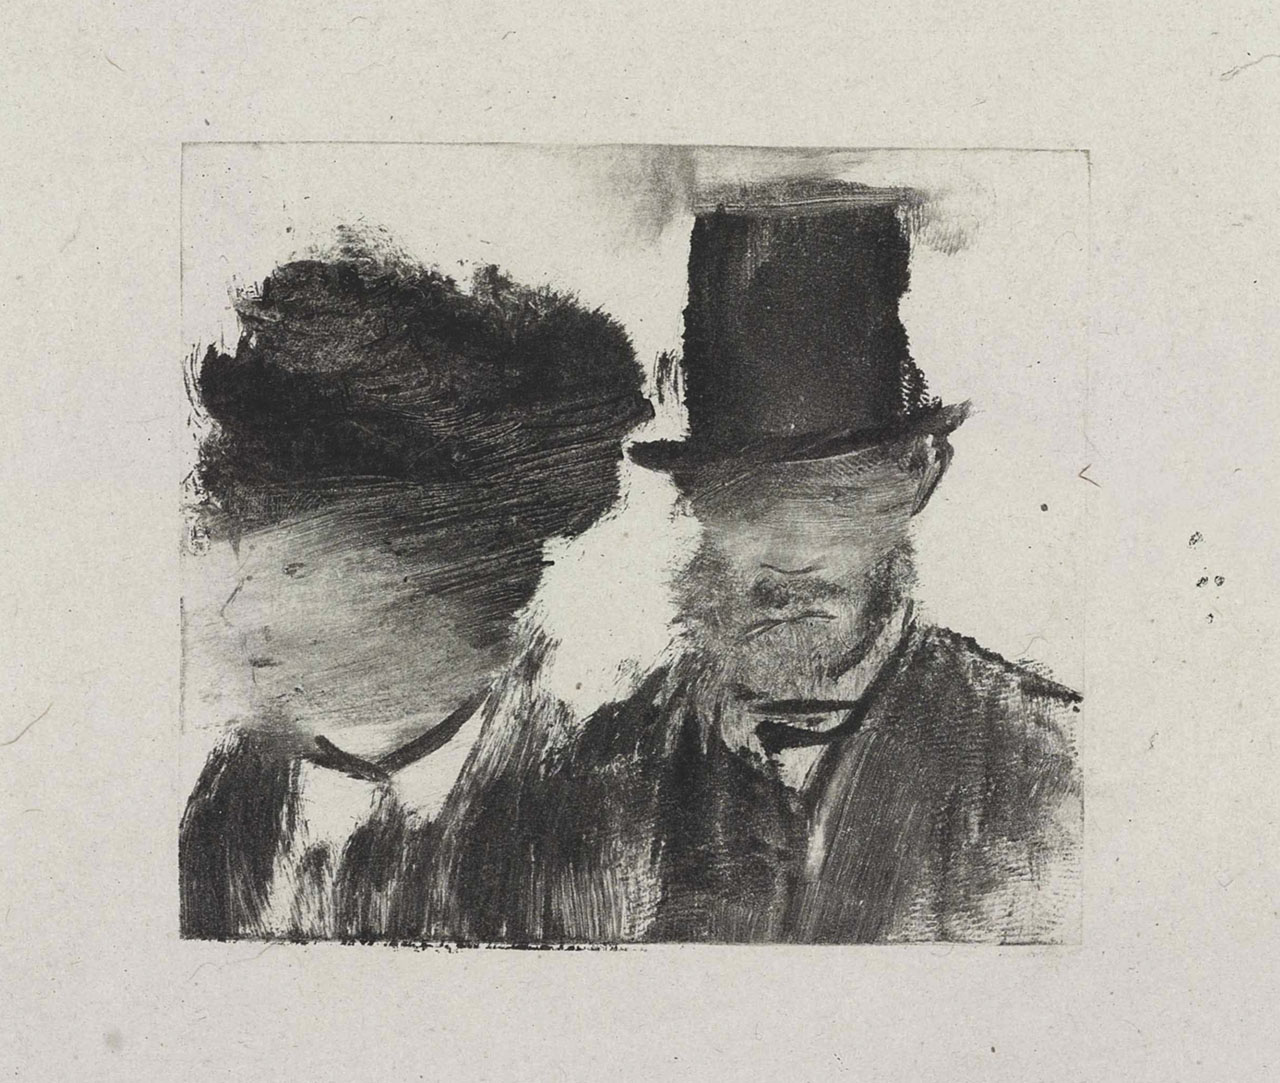 Edgar Degas: Heads of a Man and Woman, sold at Christies